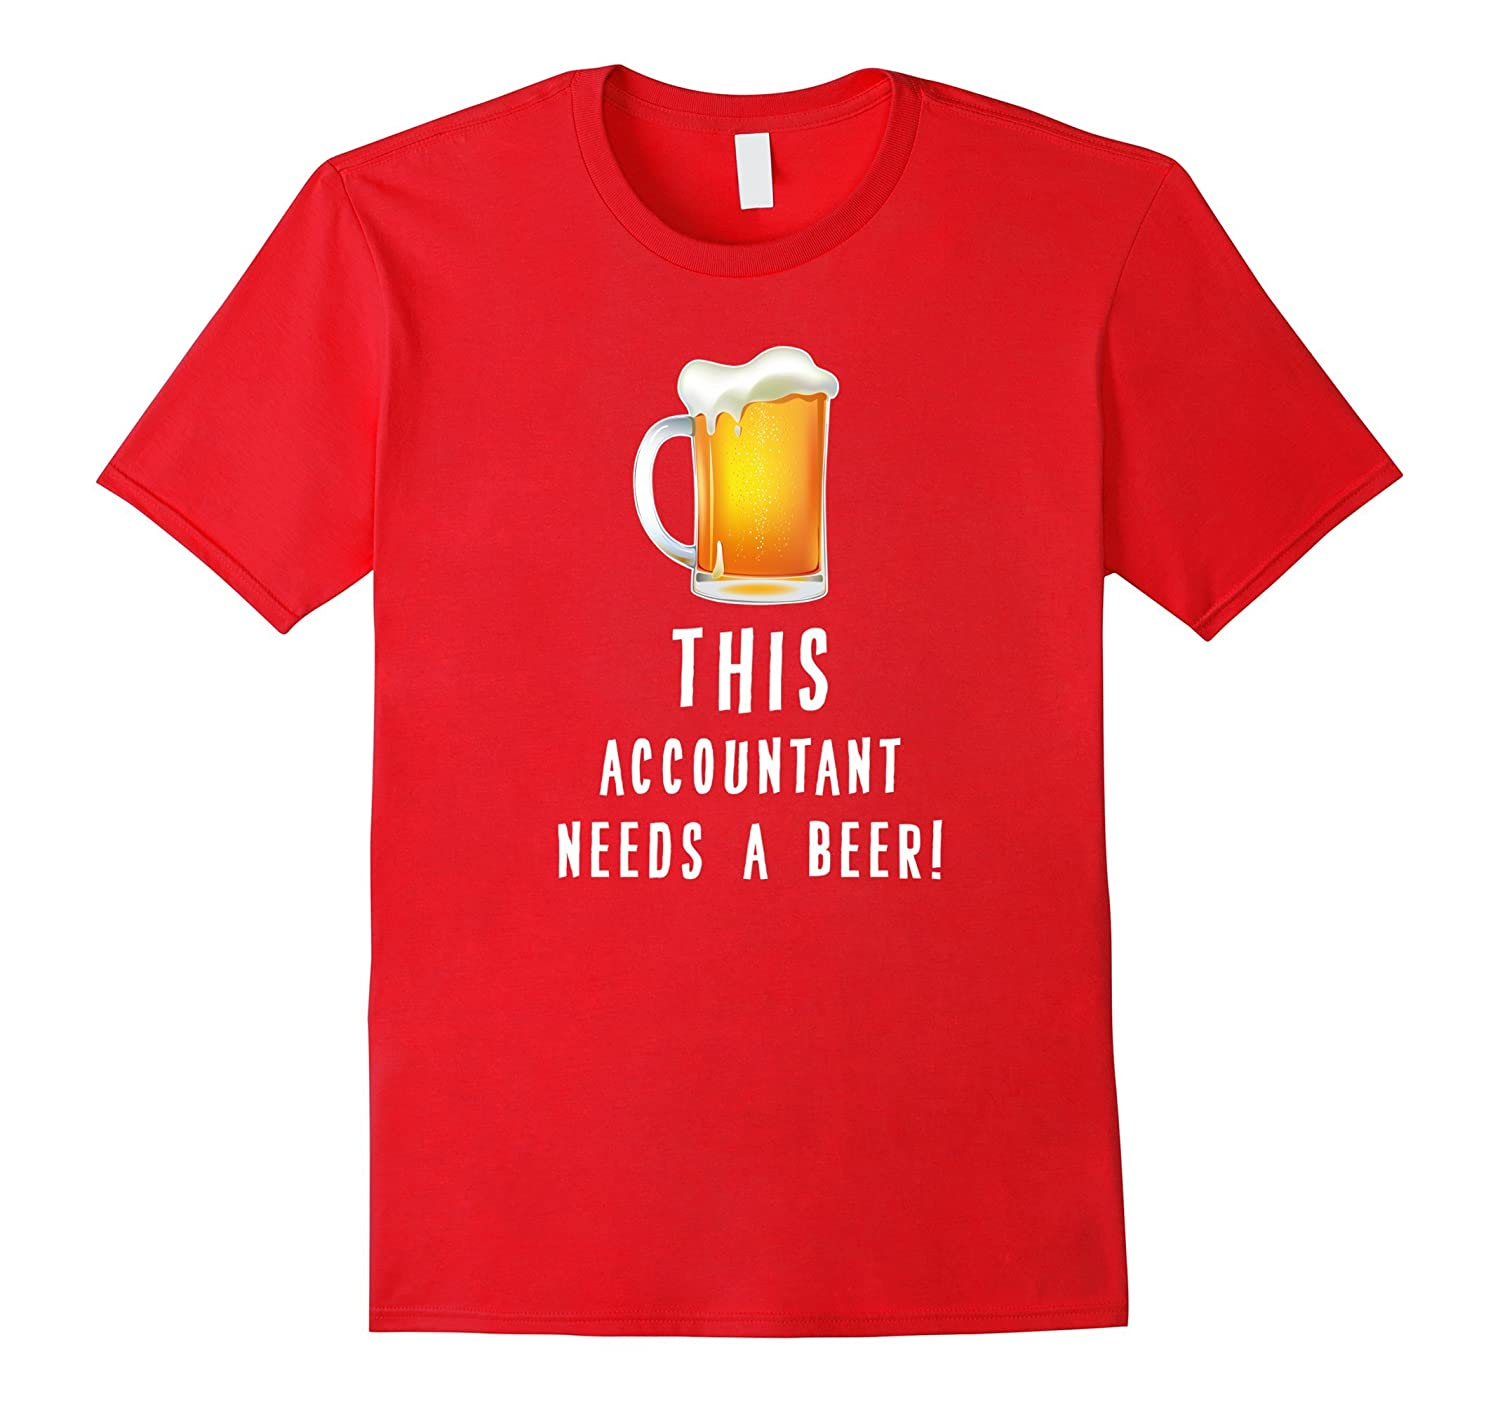 Accountant T-shirt - This accountant needs a beer-TJ